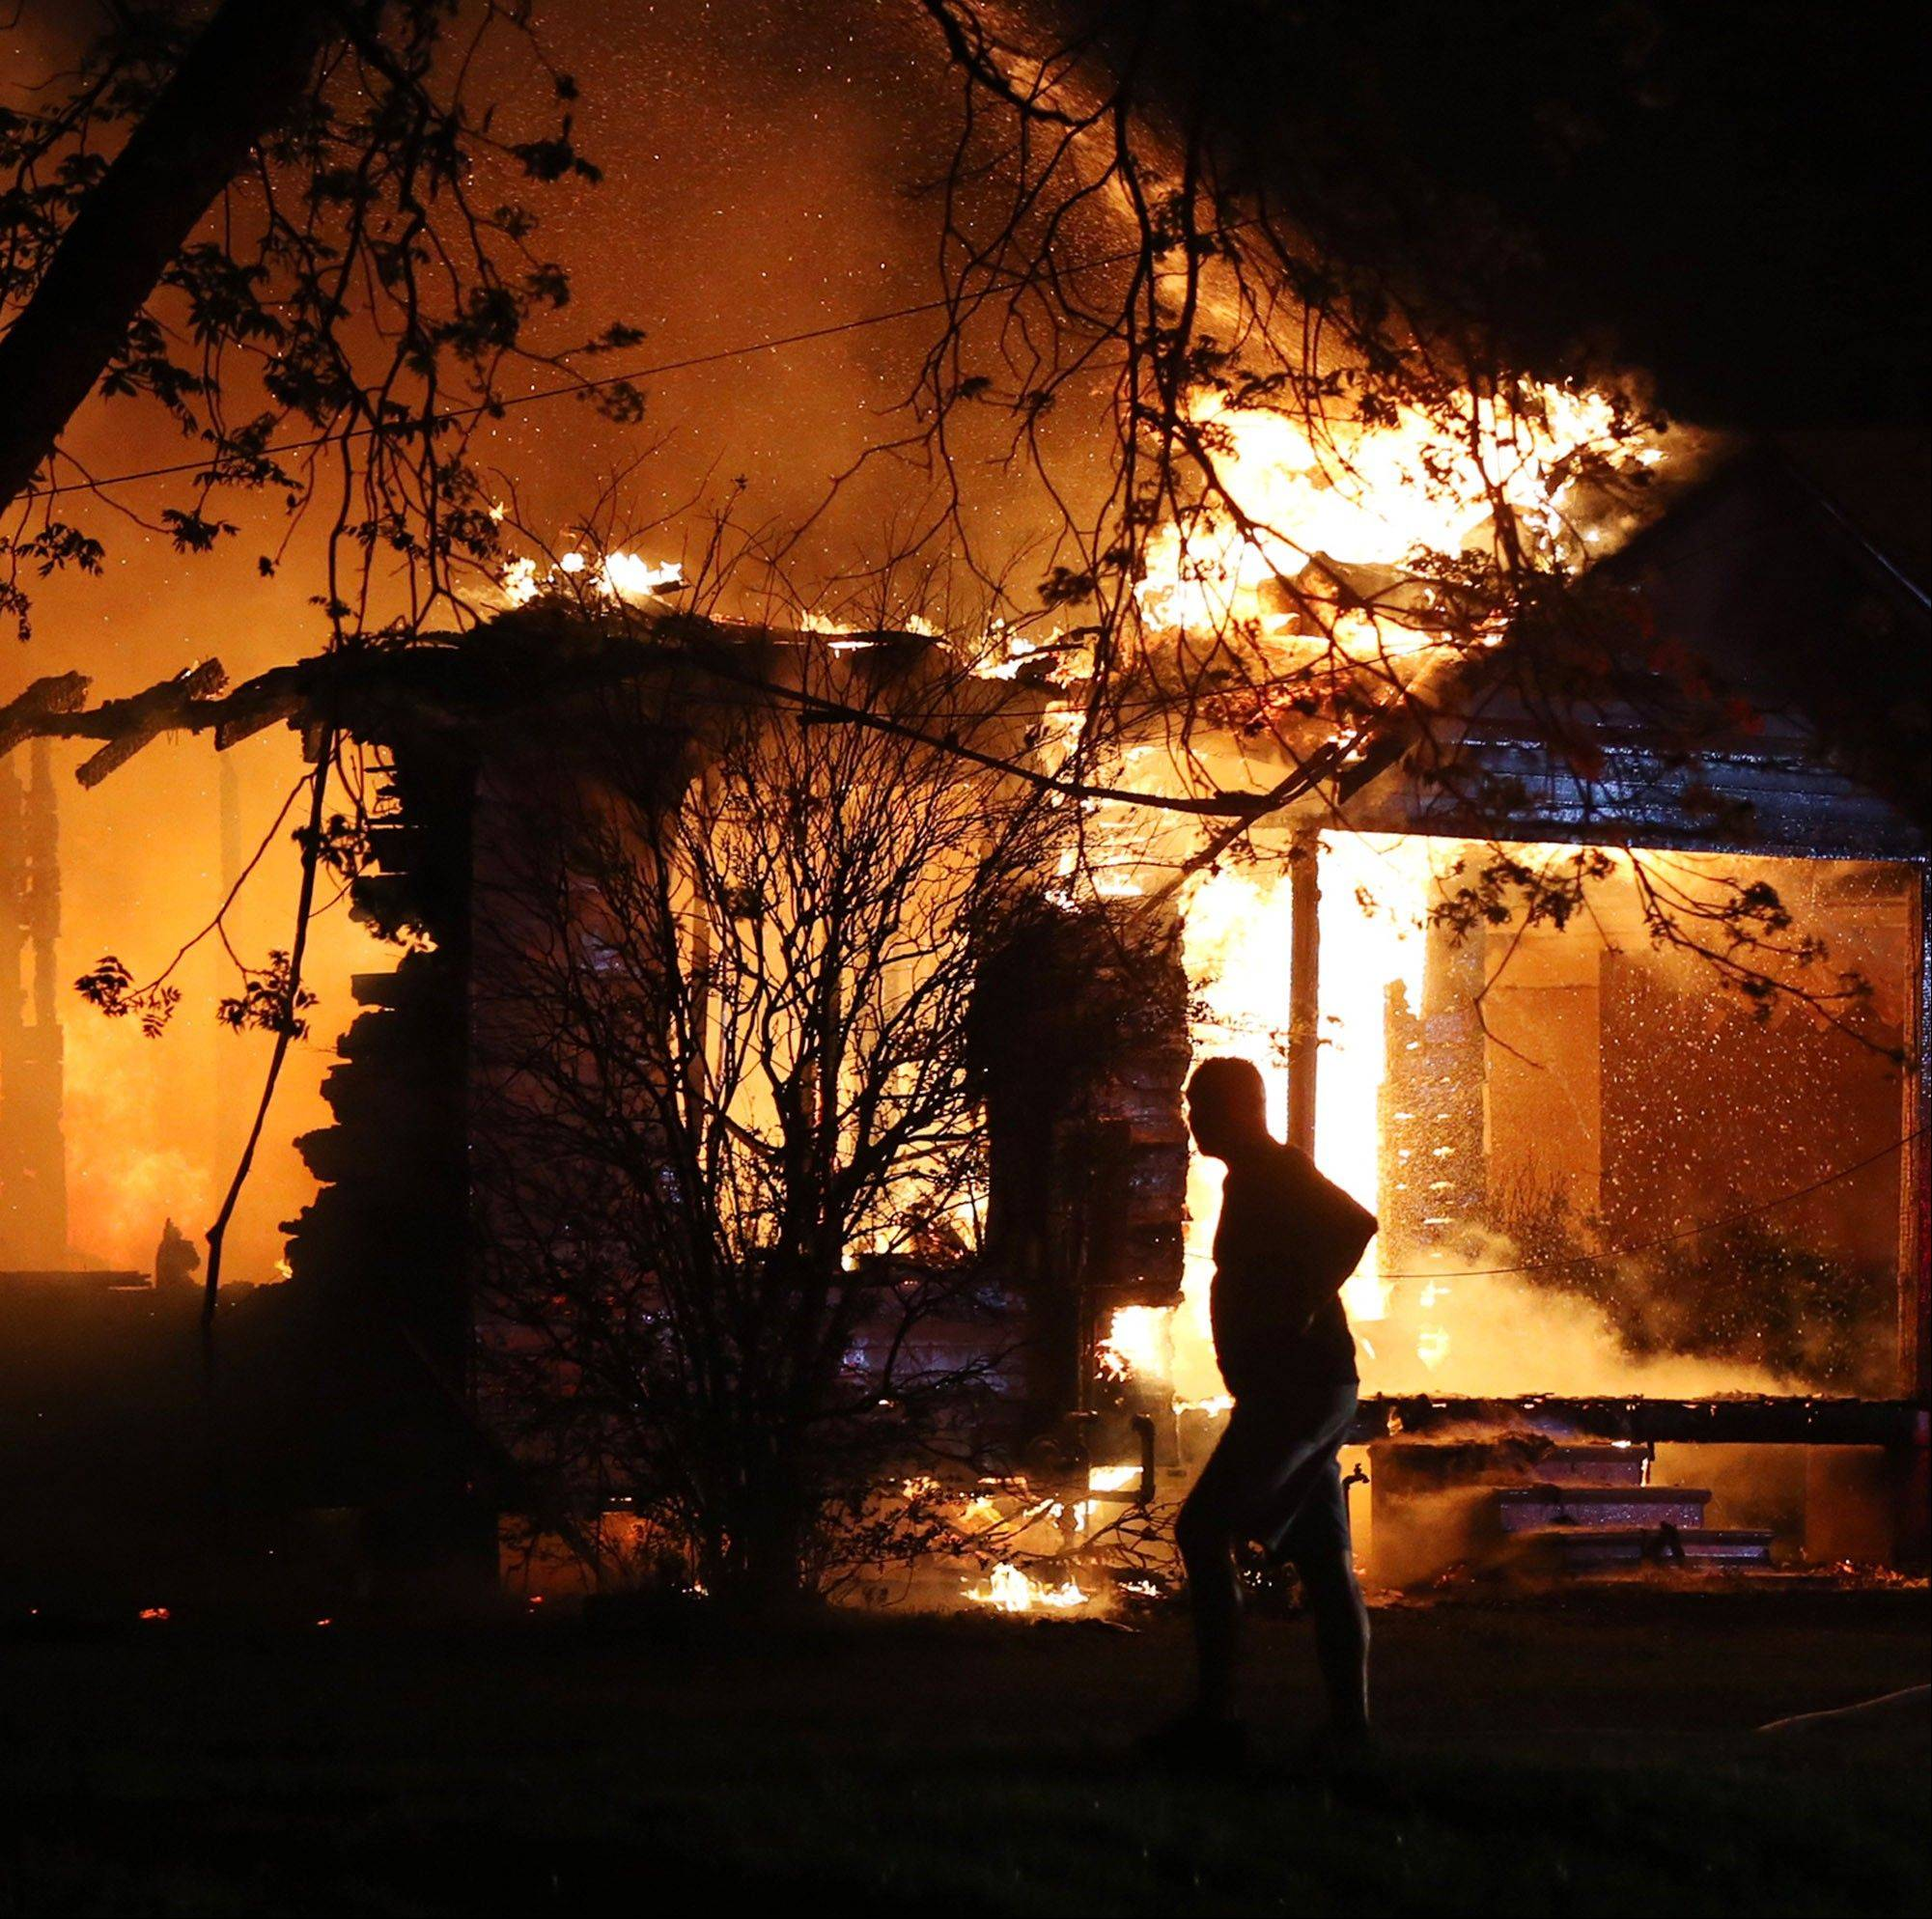 A person looks on as emergency workers fight a house fire after a nearby fertilizer plant exploded Wednesday.